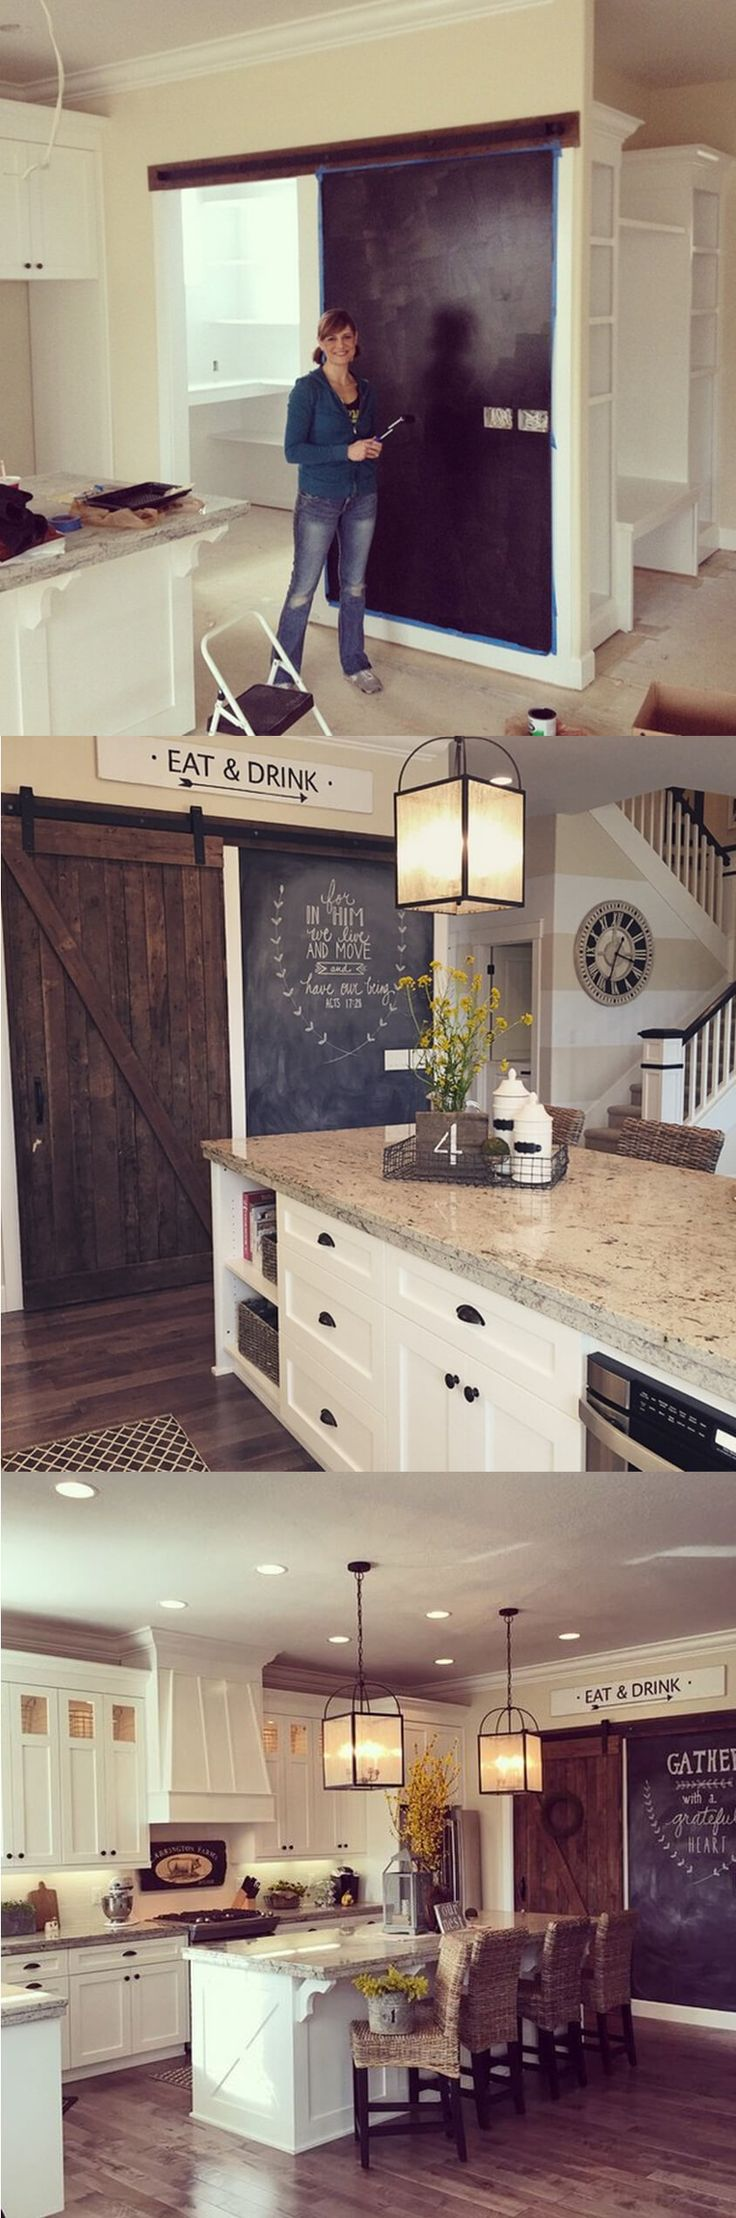 best 20+ barn kitchen ideas on pinterest | modern utility sinks